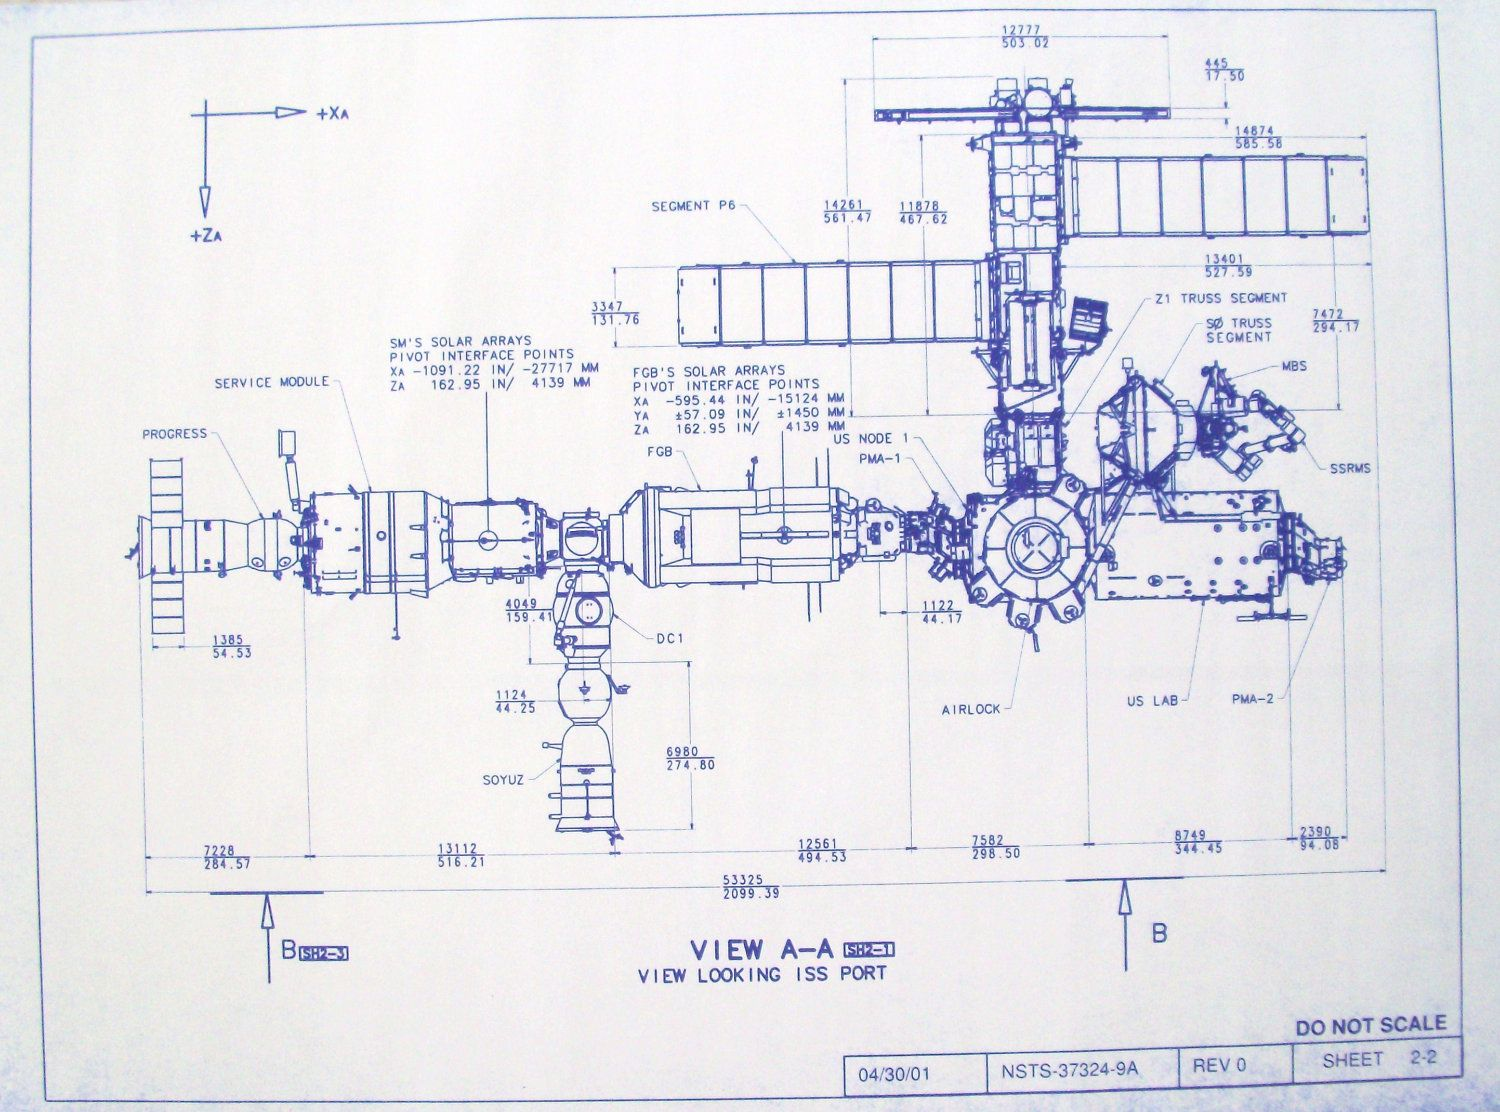 mir space station blueprint (page 3) - pics about space